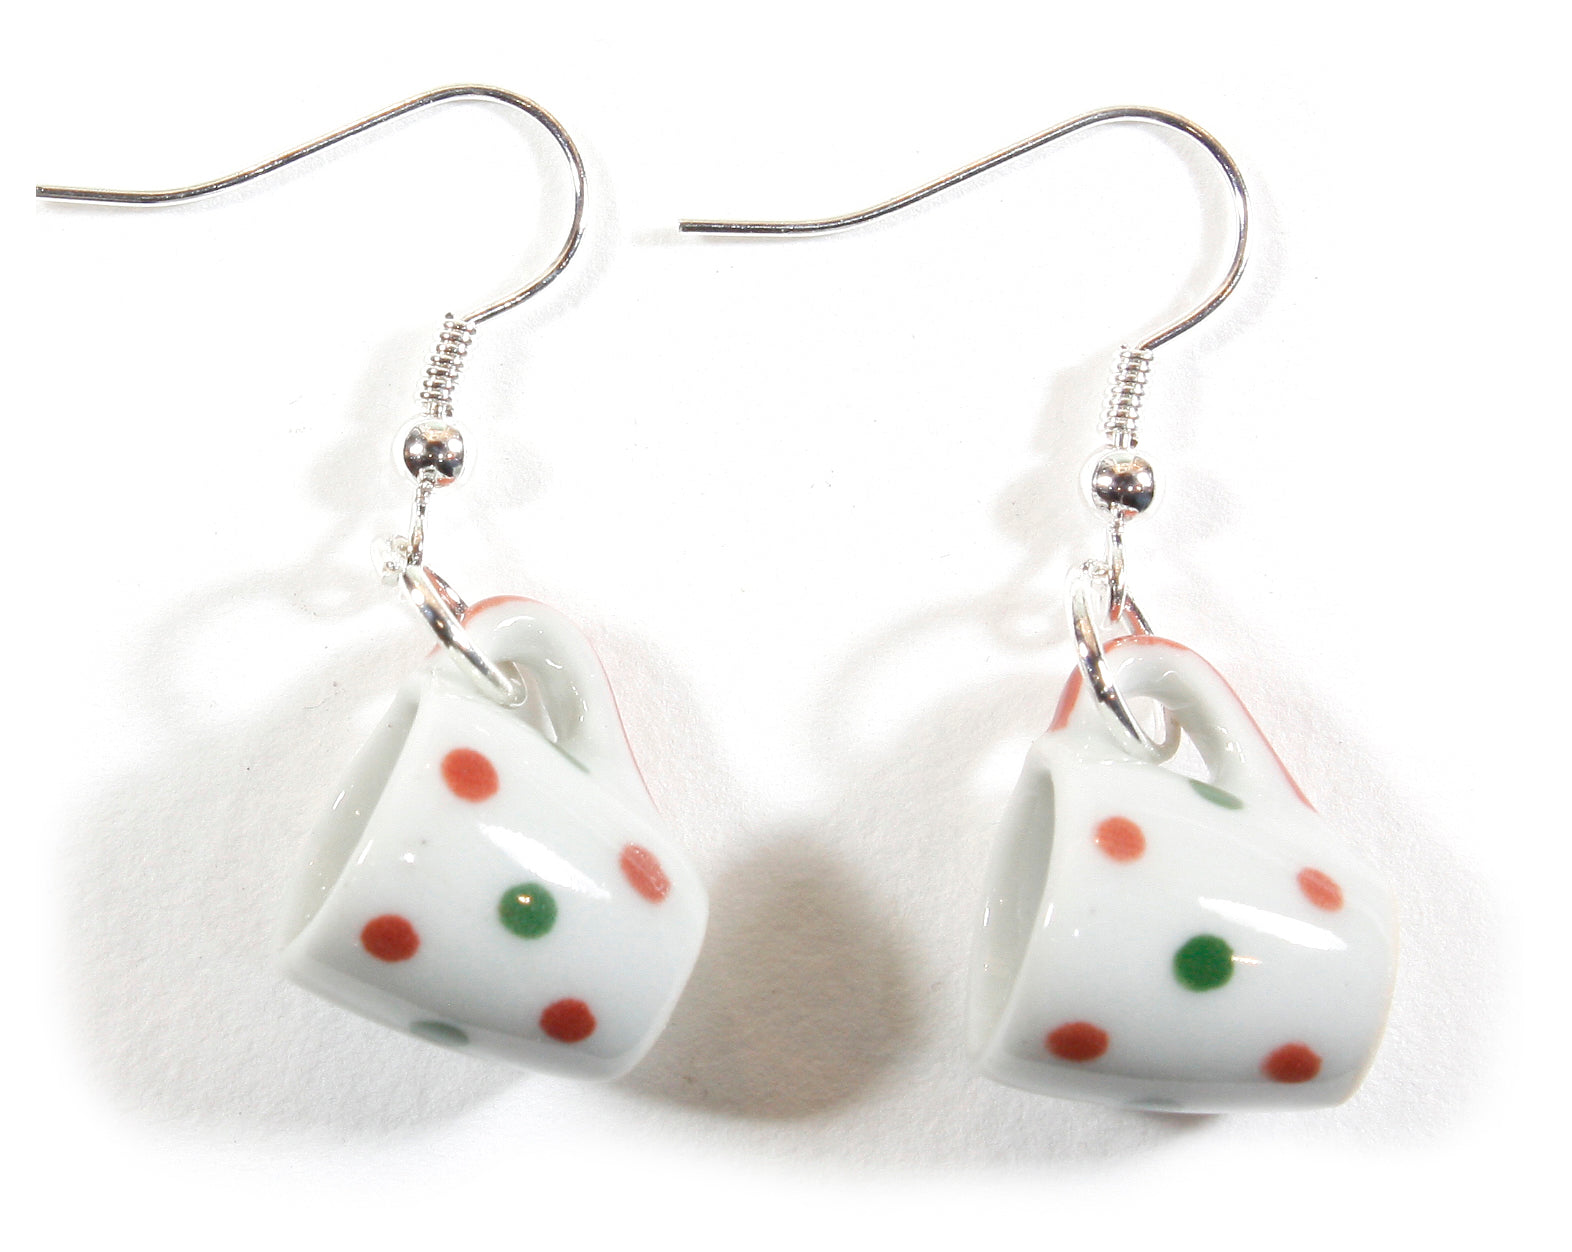 Ready for Coffee, Polka Dotted Miniature Ceramic Coffee Cup Earrings